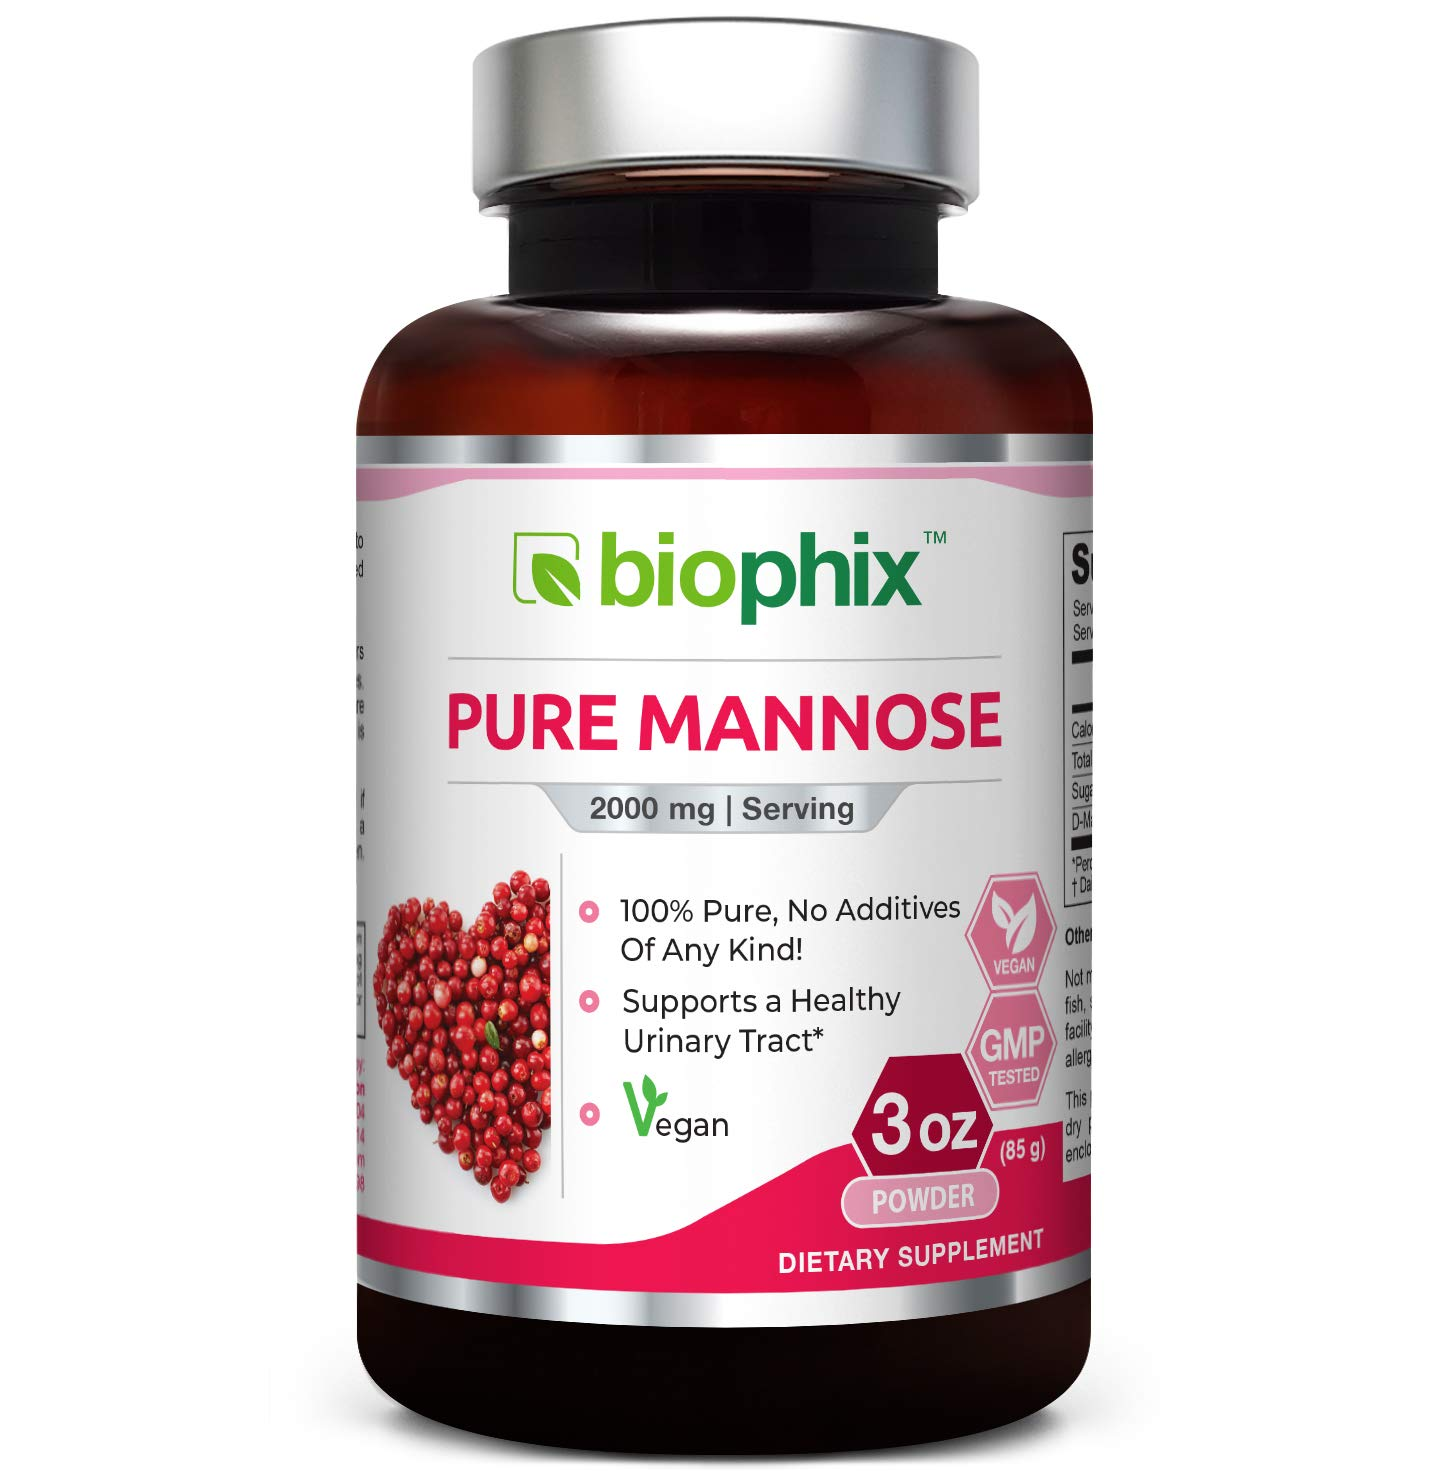 Pure Mannose 100 Percent Powder 2000 mg 3 oz 85 Grams - Supports Urinary Bladder Tract Health